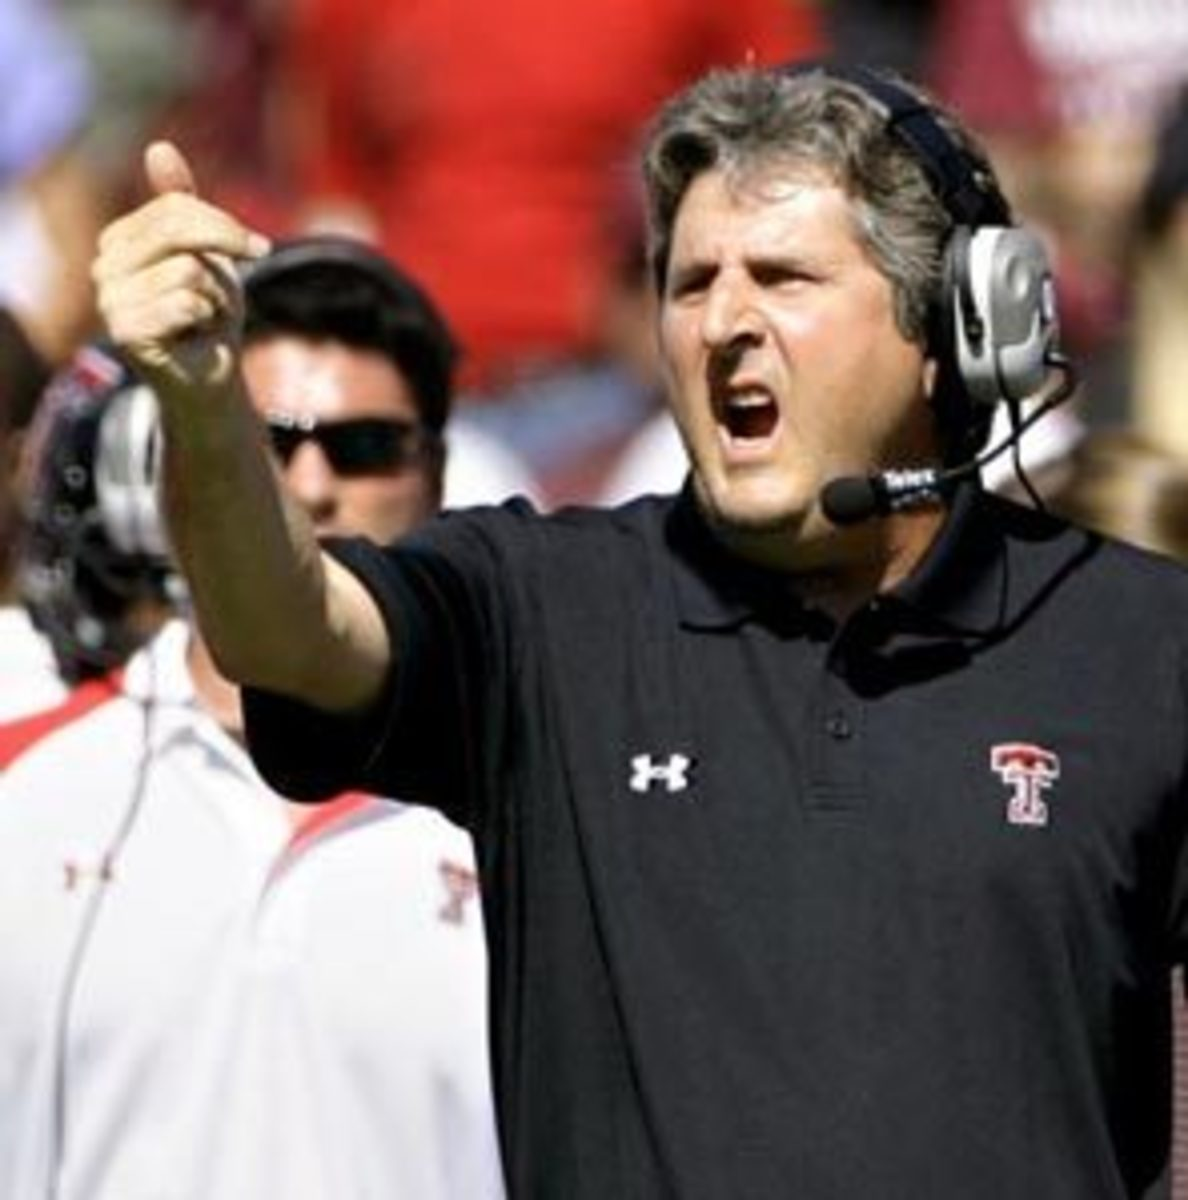 Never One to Take it Easy, Mike Leach Hammers Some at Tech in this Statement.